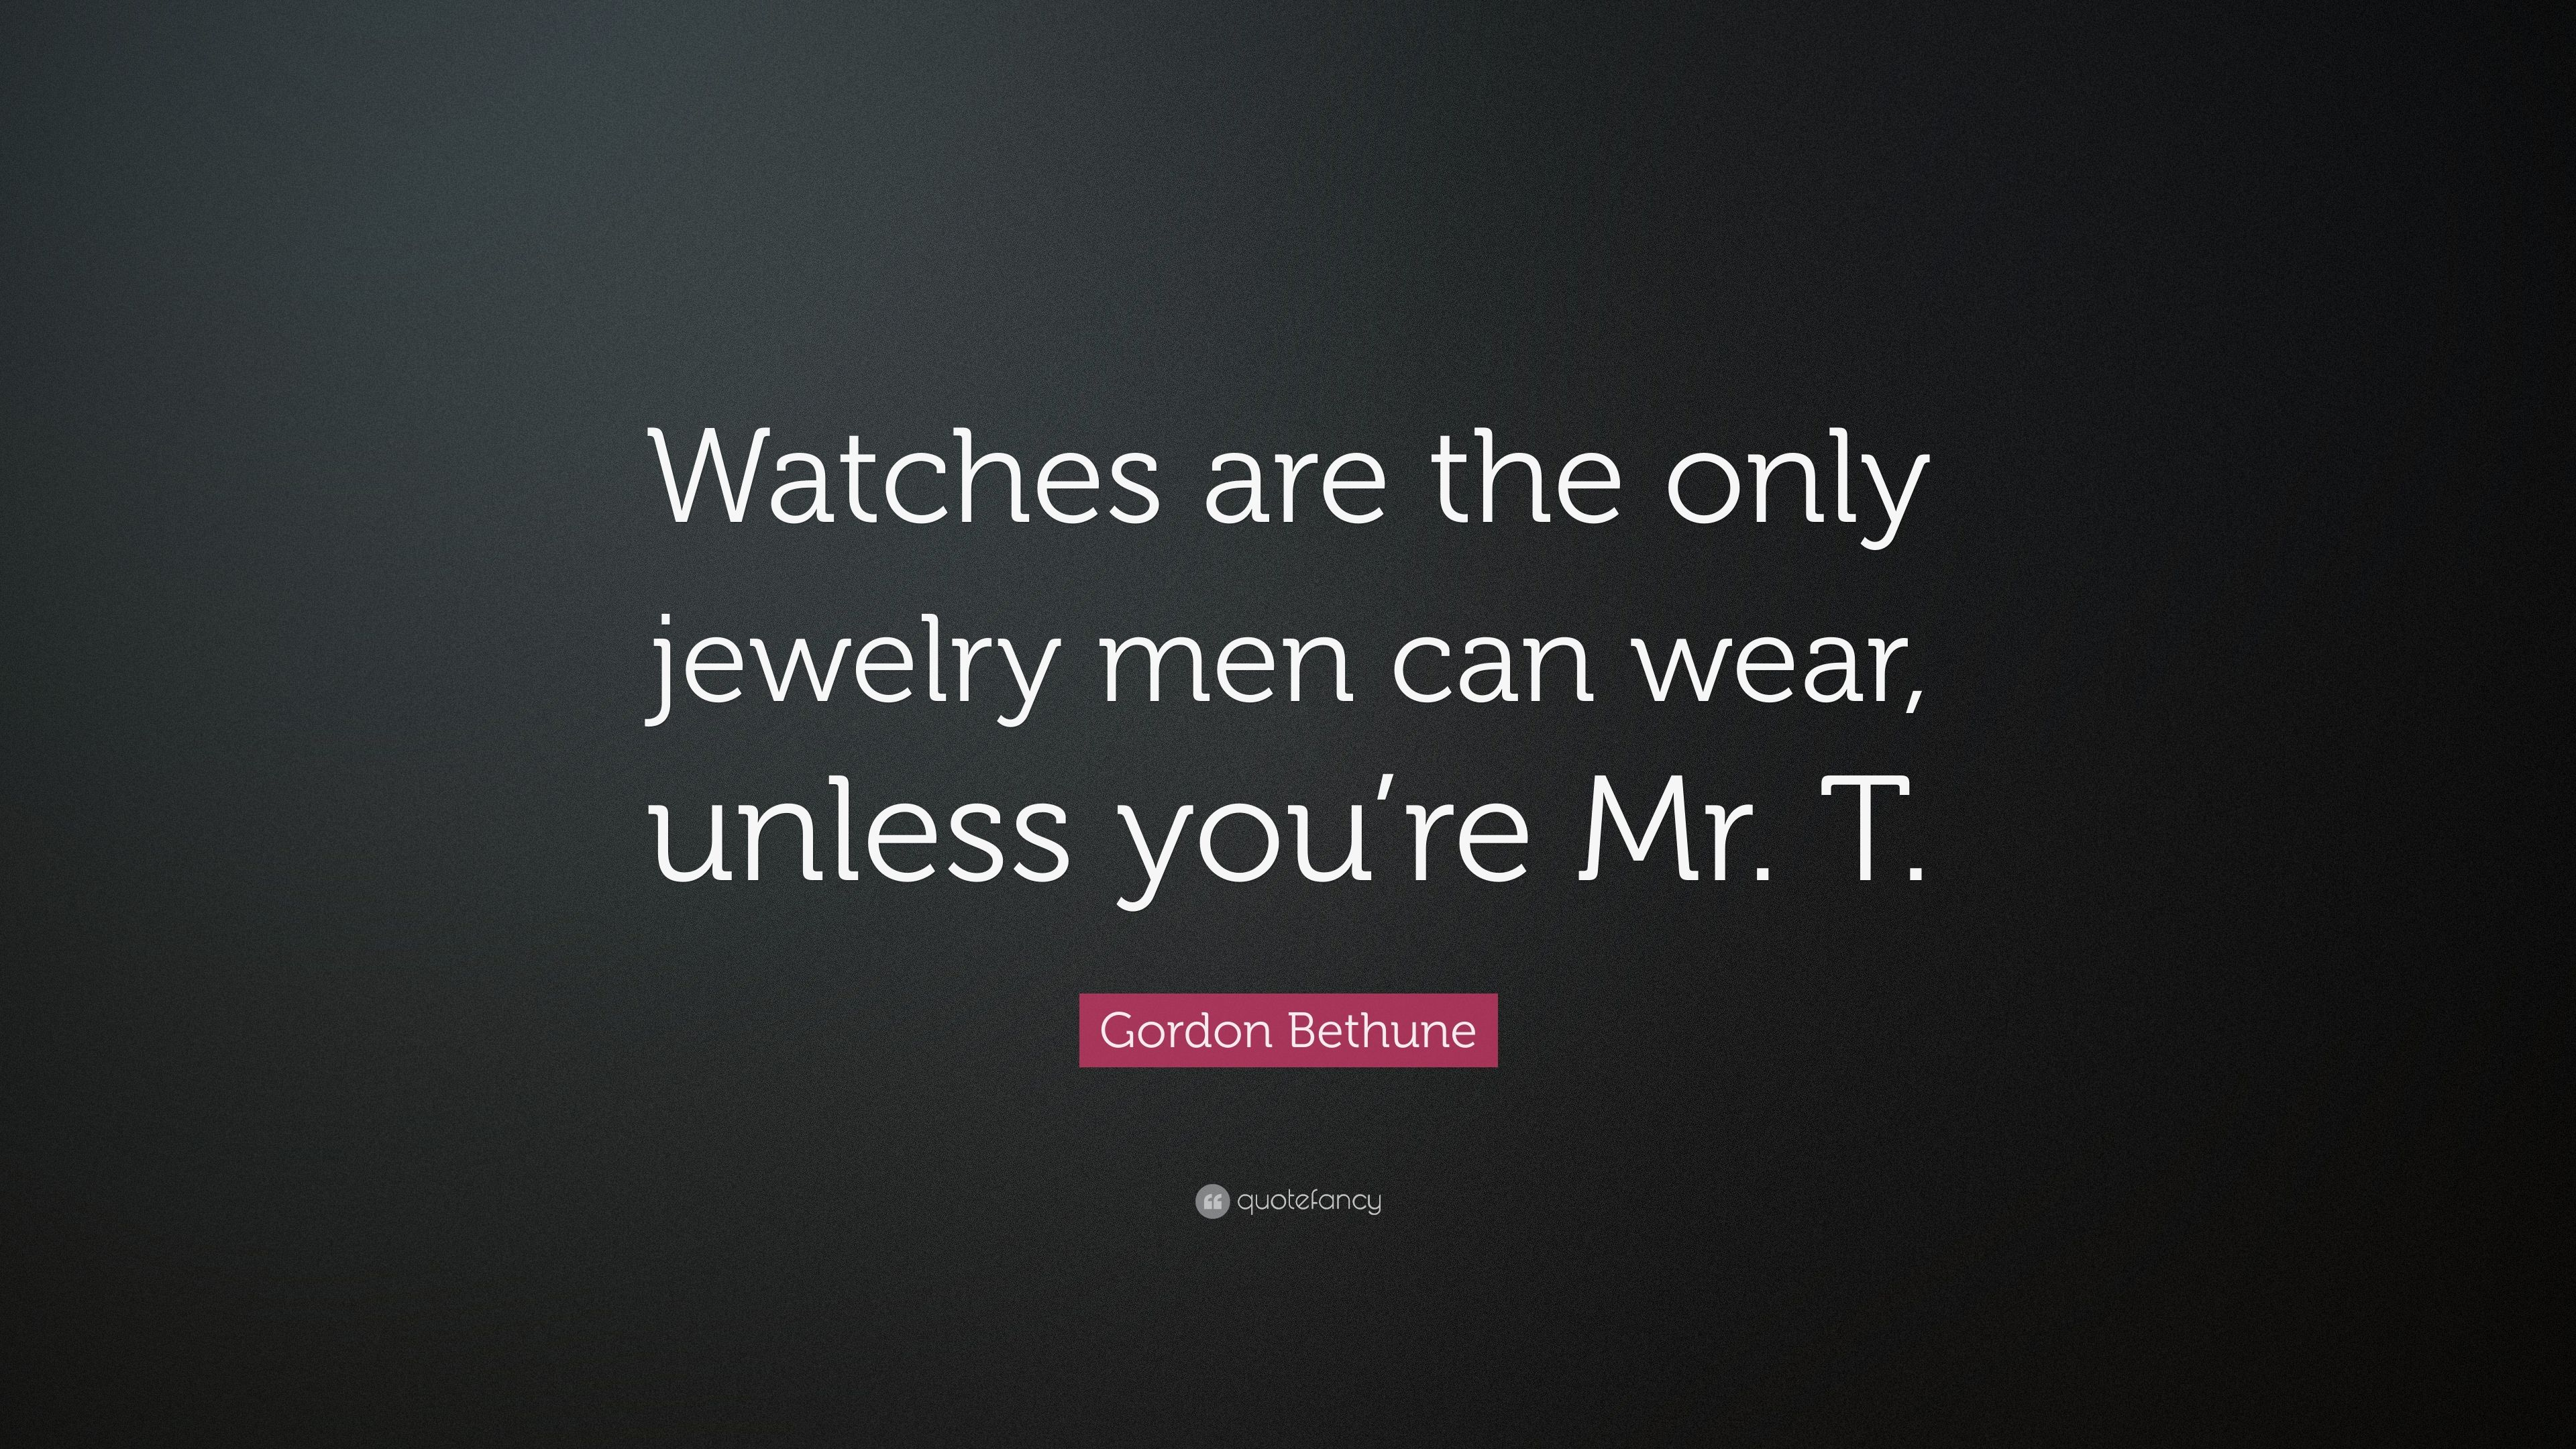 mens gift for loreti filippo perfect ideas business christmas quote insider guys watches guy